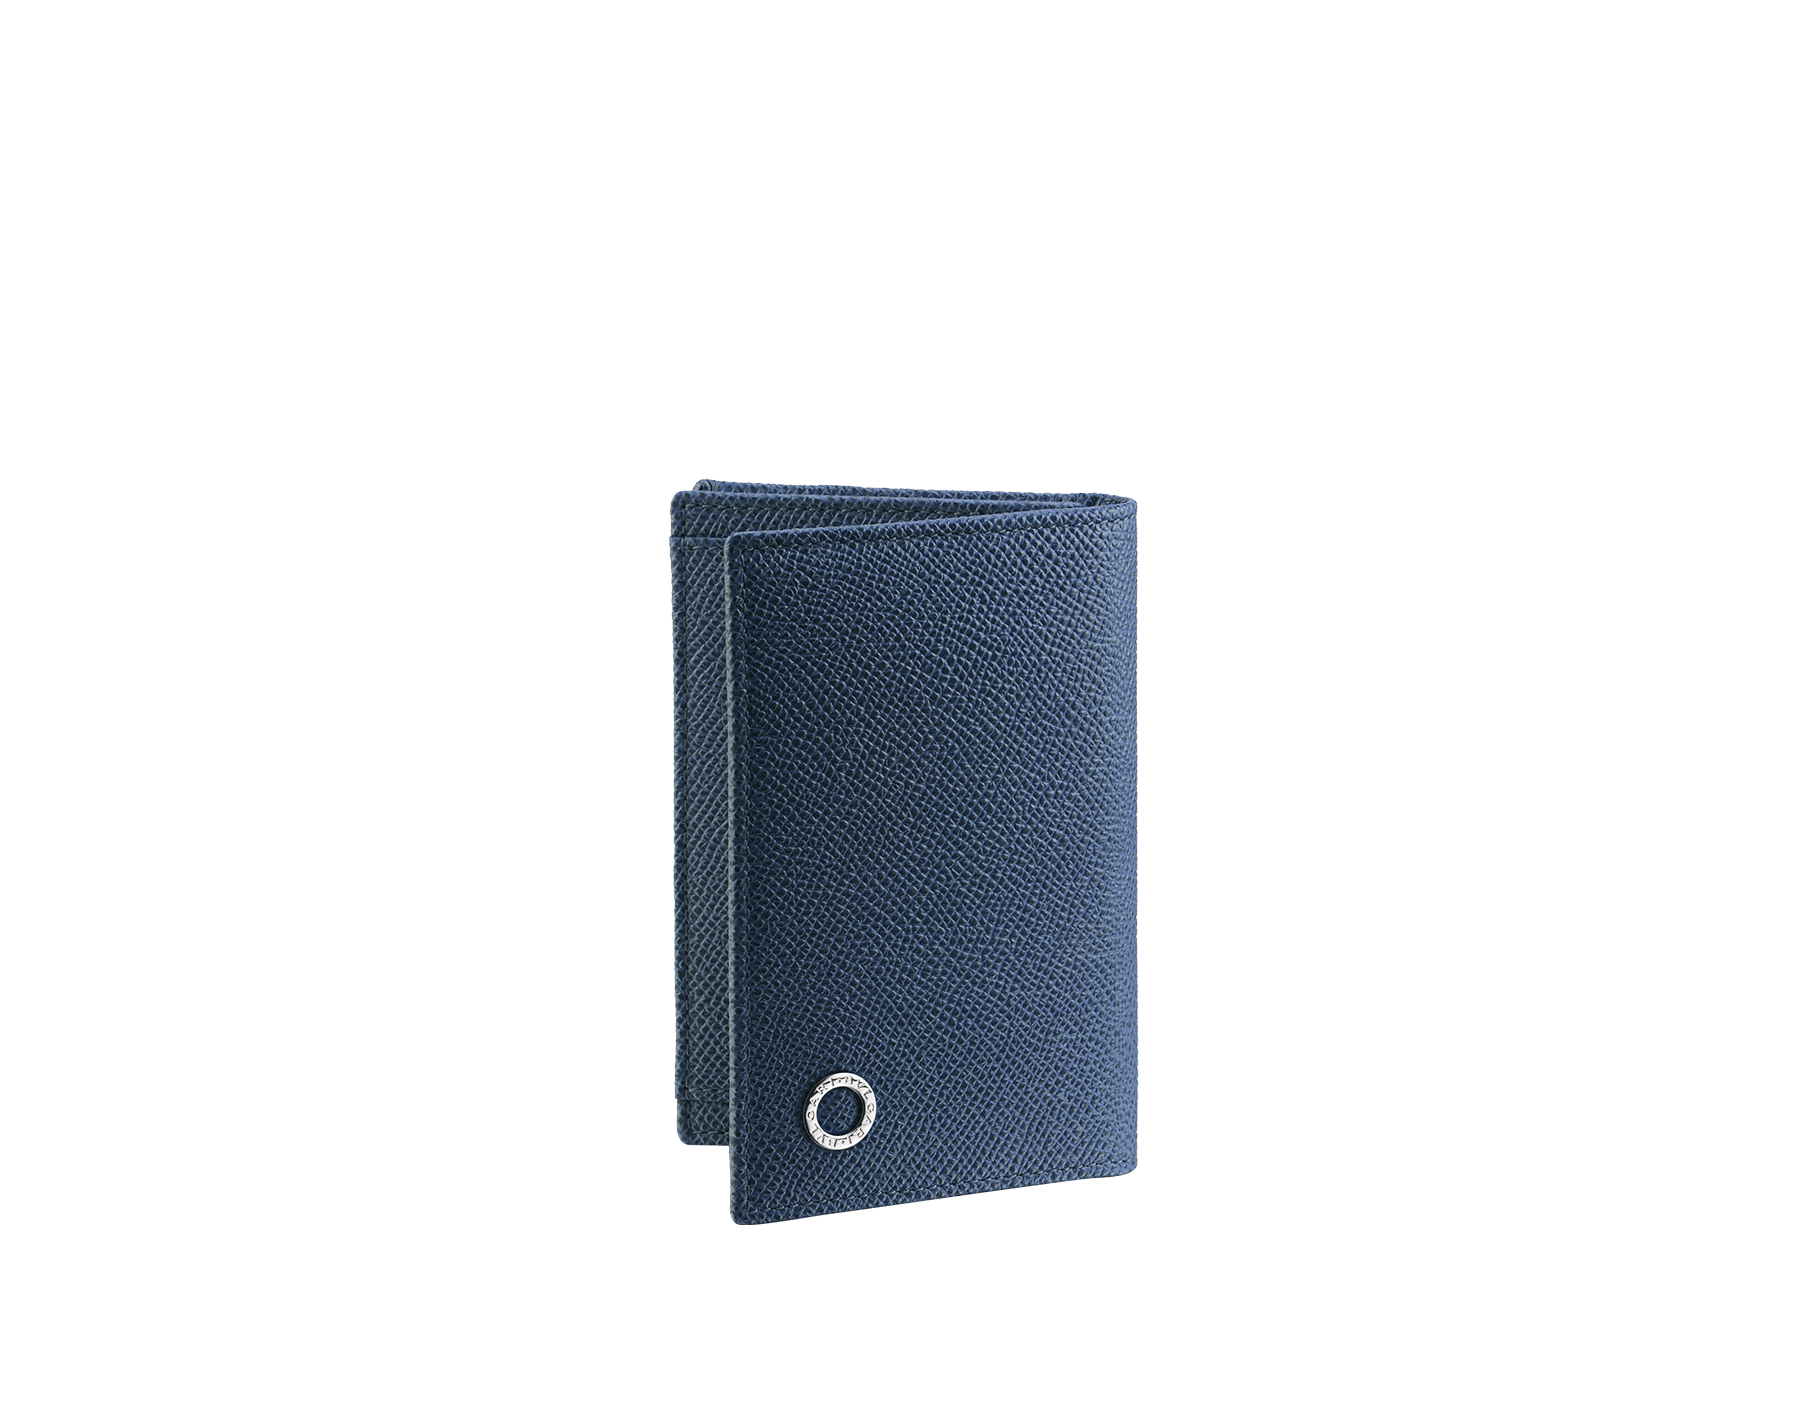 Business card holder in denim sapphire grain calf leather with brass palladium plated Bulgari Bulgari motif. Three credit card slots, one open pocket and business cards compartment. BBM-BC-HOLD-SIMPLEa image 1